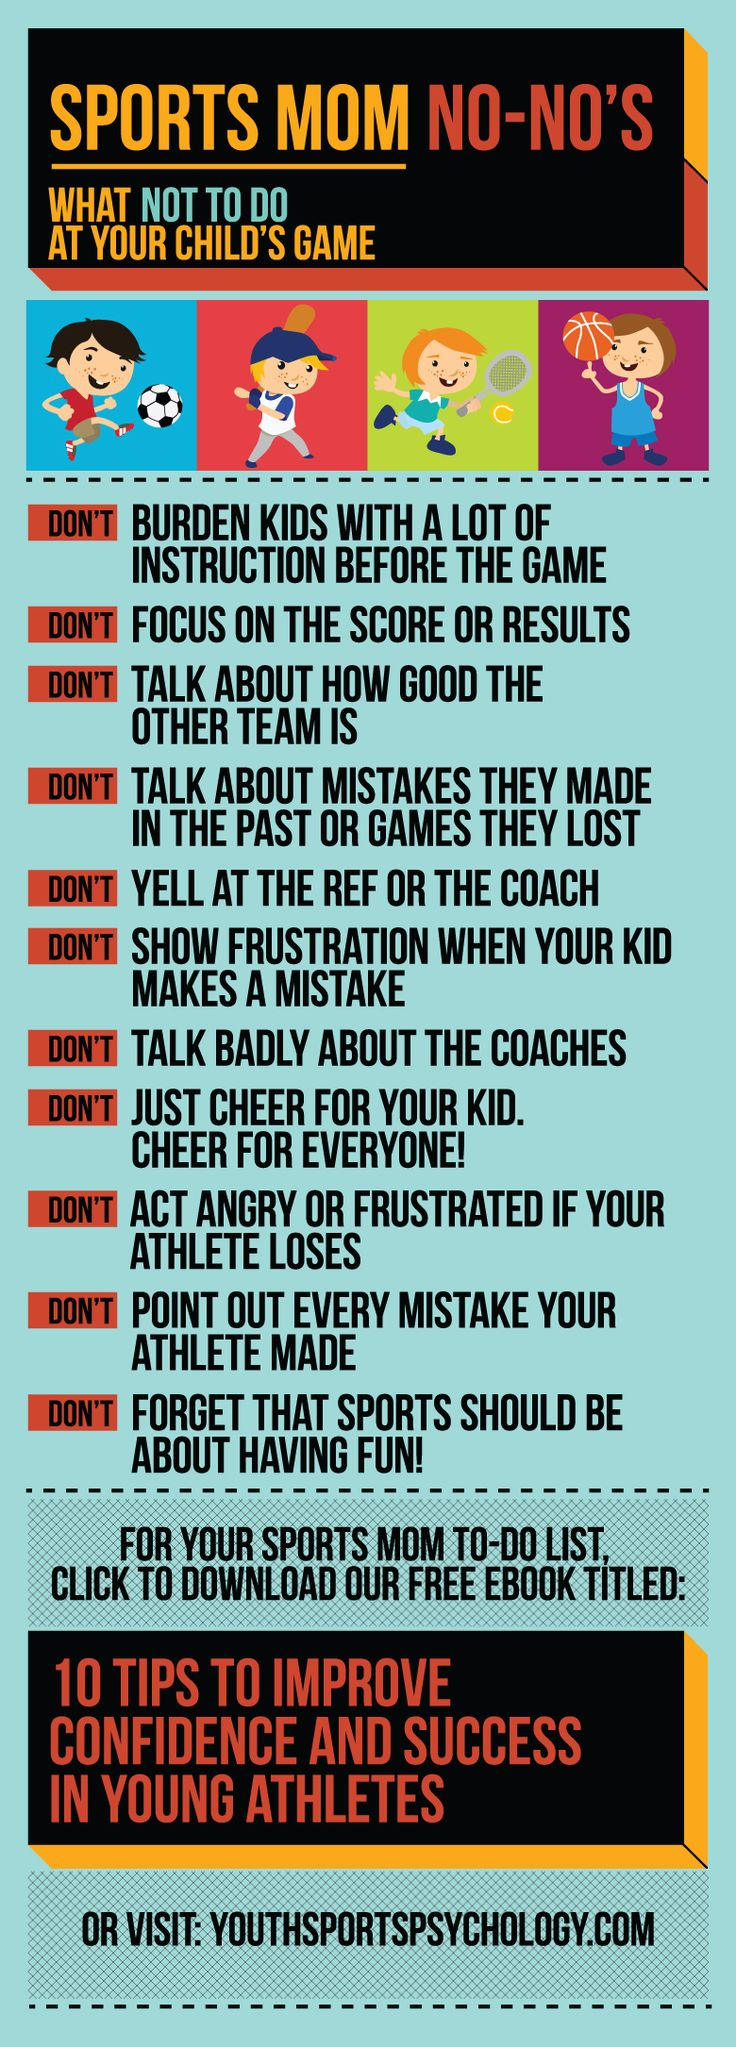 Sports Mom No-No's! A lot of sports moms unknowingly hurt their young athlete's confidence. Here are the top 11 sports mom no-no's to avoid.